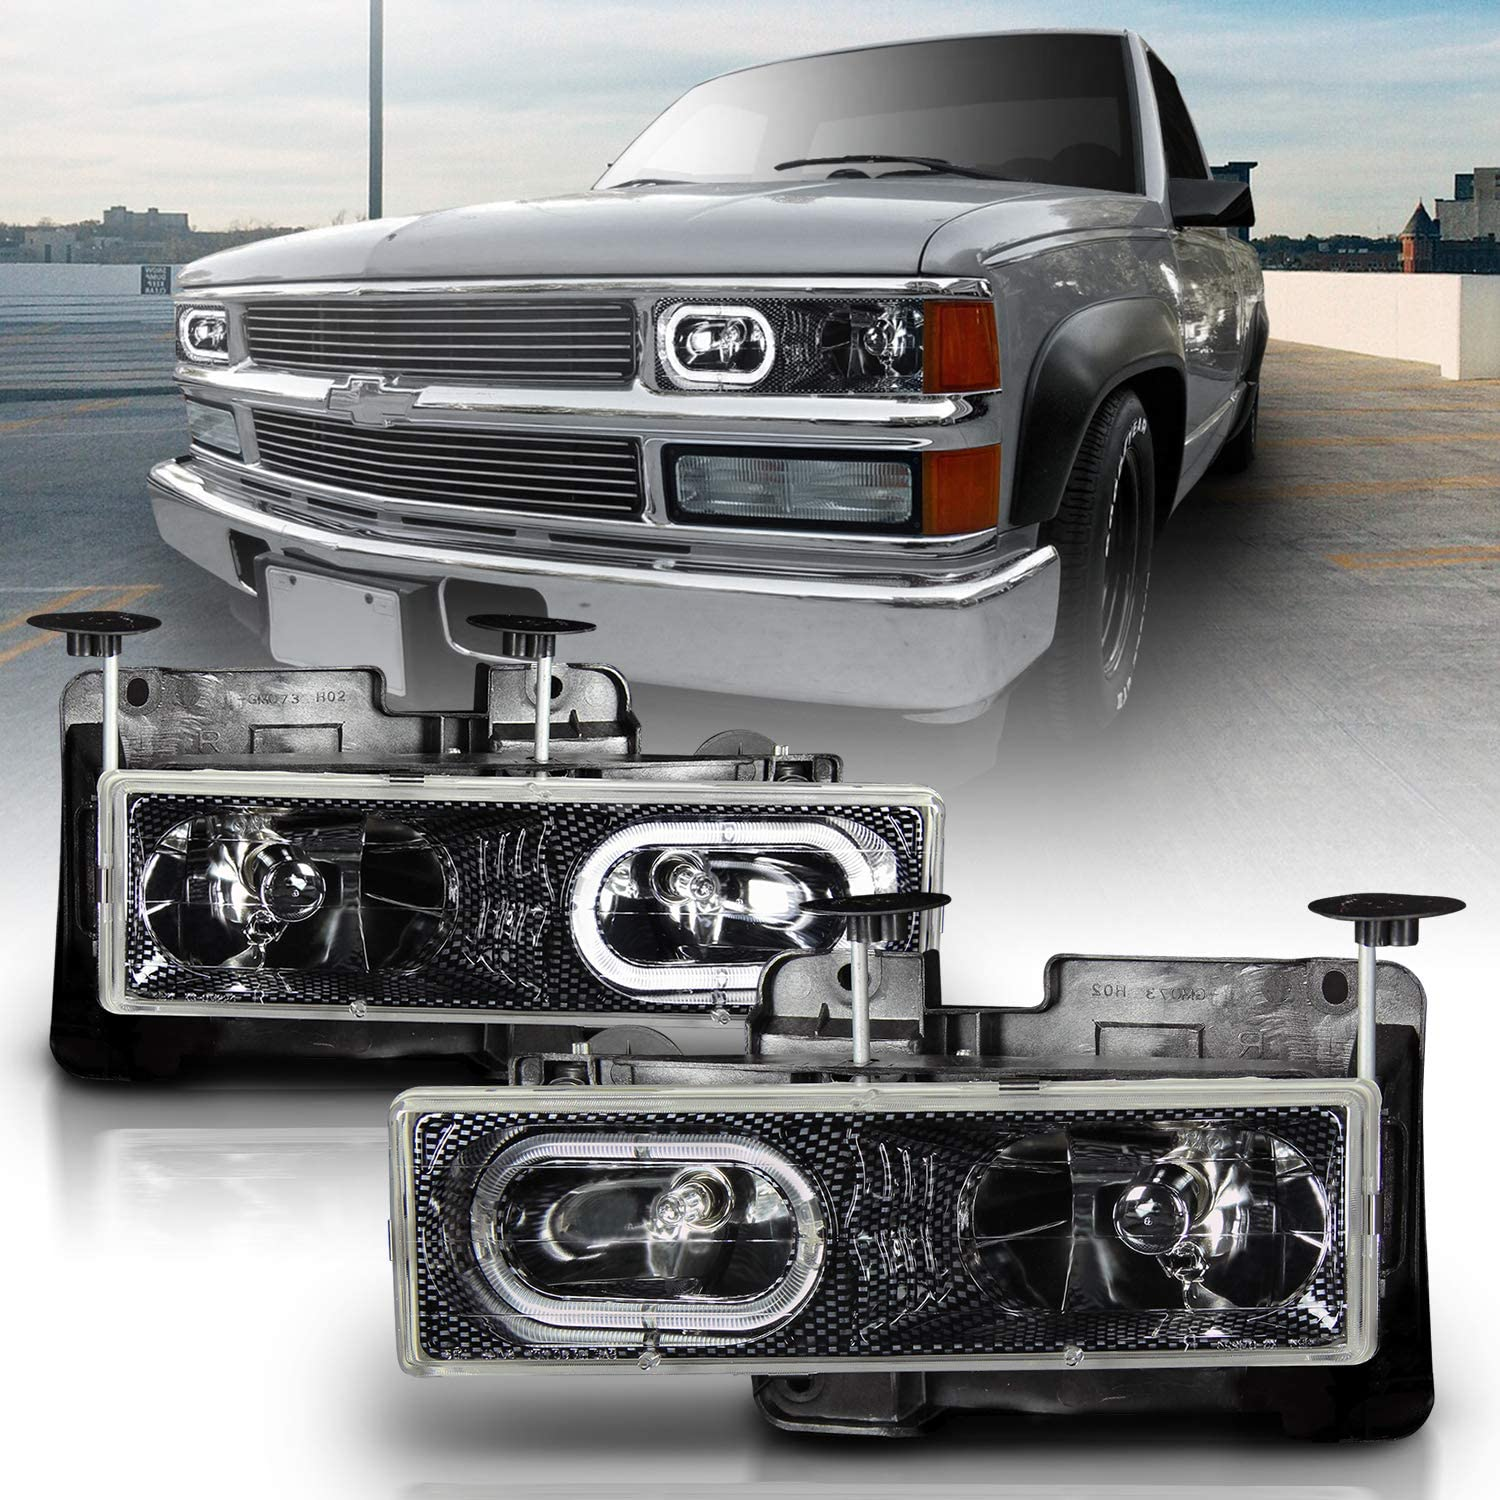 AmeriLite Clear Crystal LED Halo Headlights Pair for Chevy Fullsize Truck//SUV Passenger and Driver Side